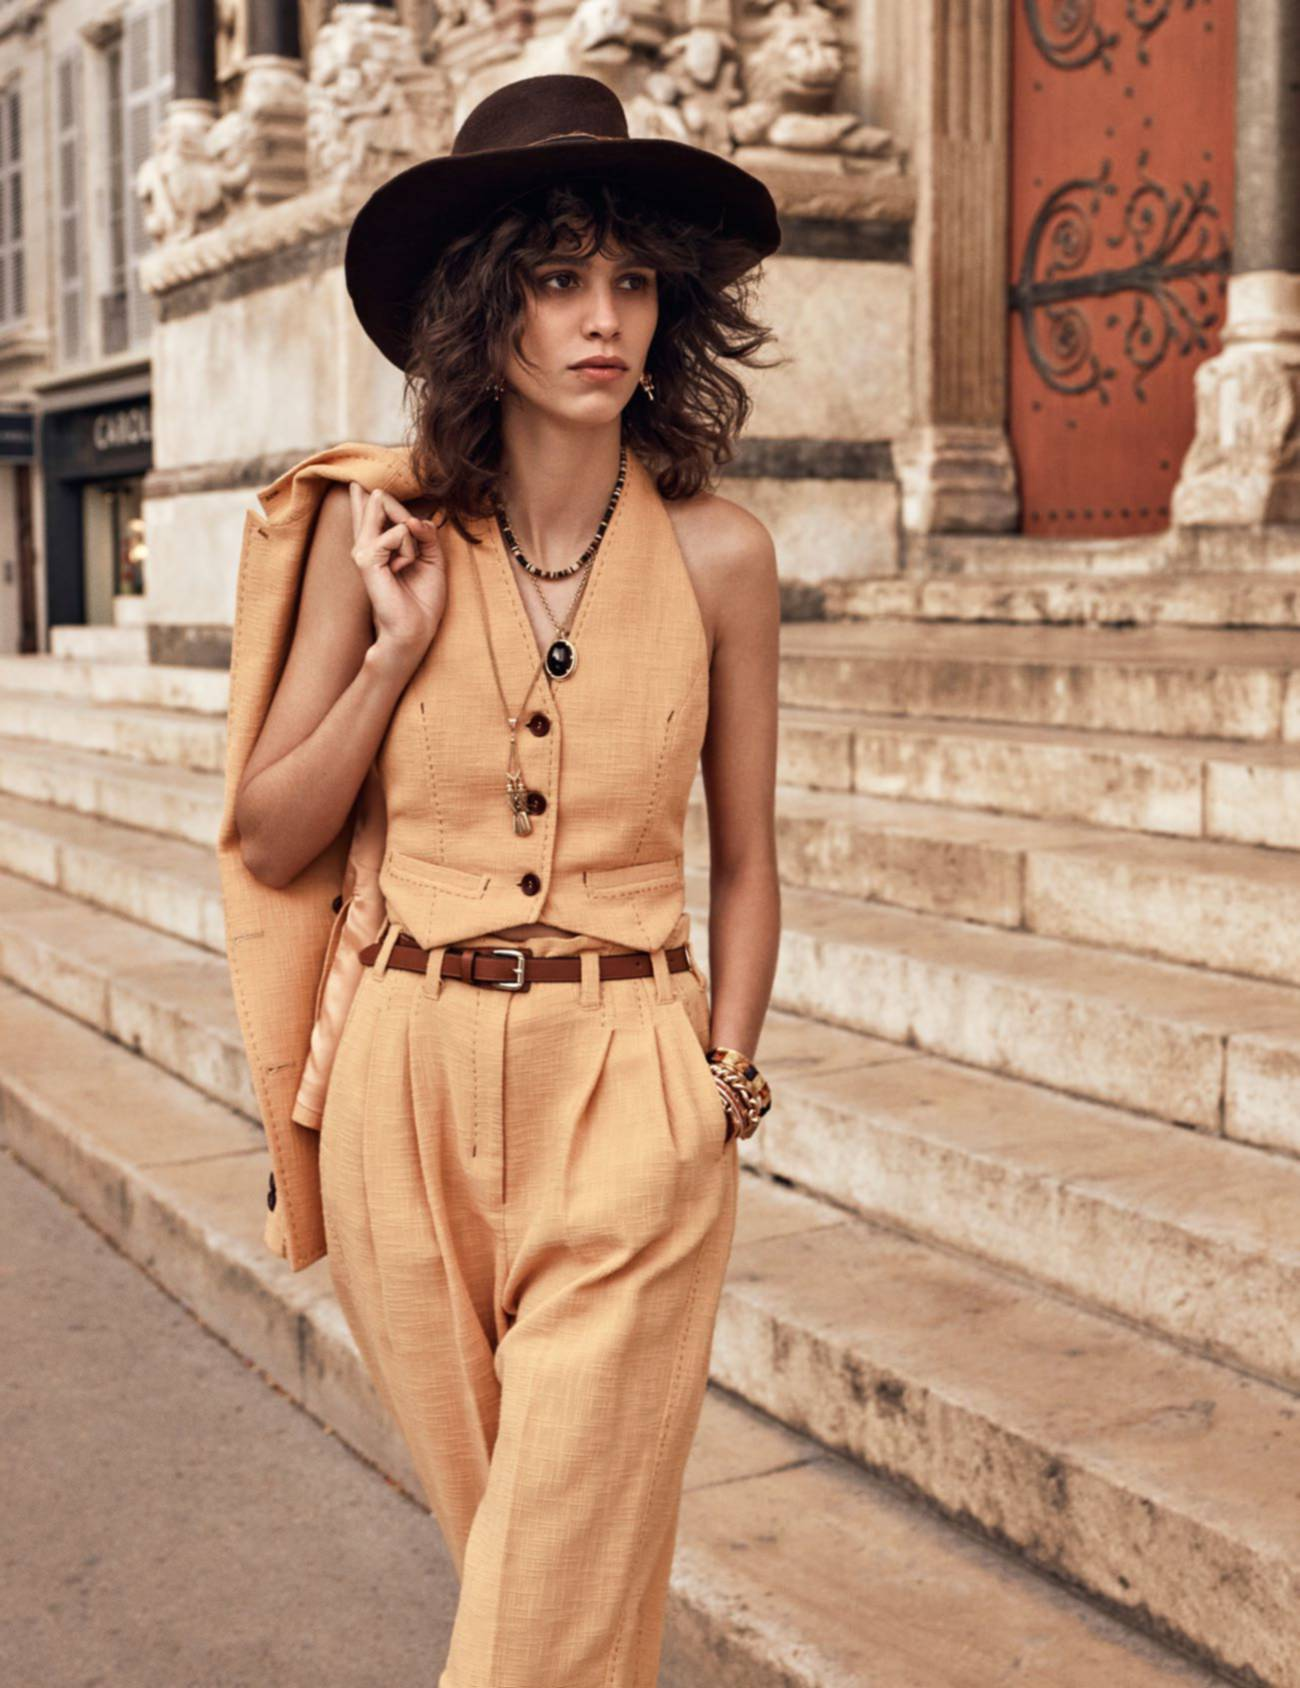 Vogue-Paris-June-July-2016-Mica-Arganaraz-by-Mikael-Jansson-05